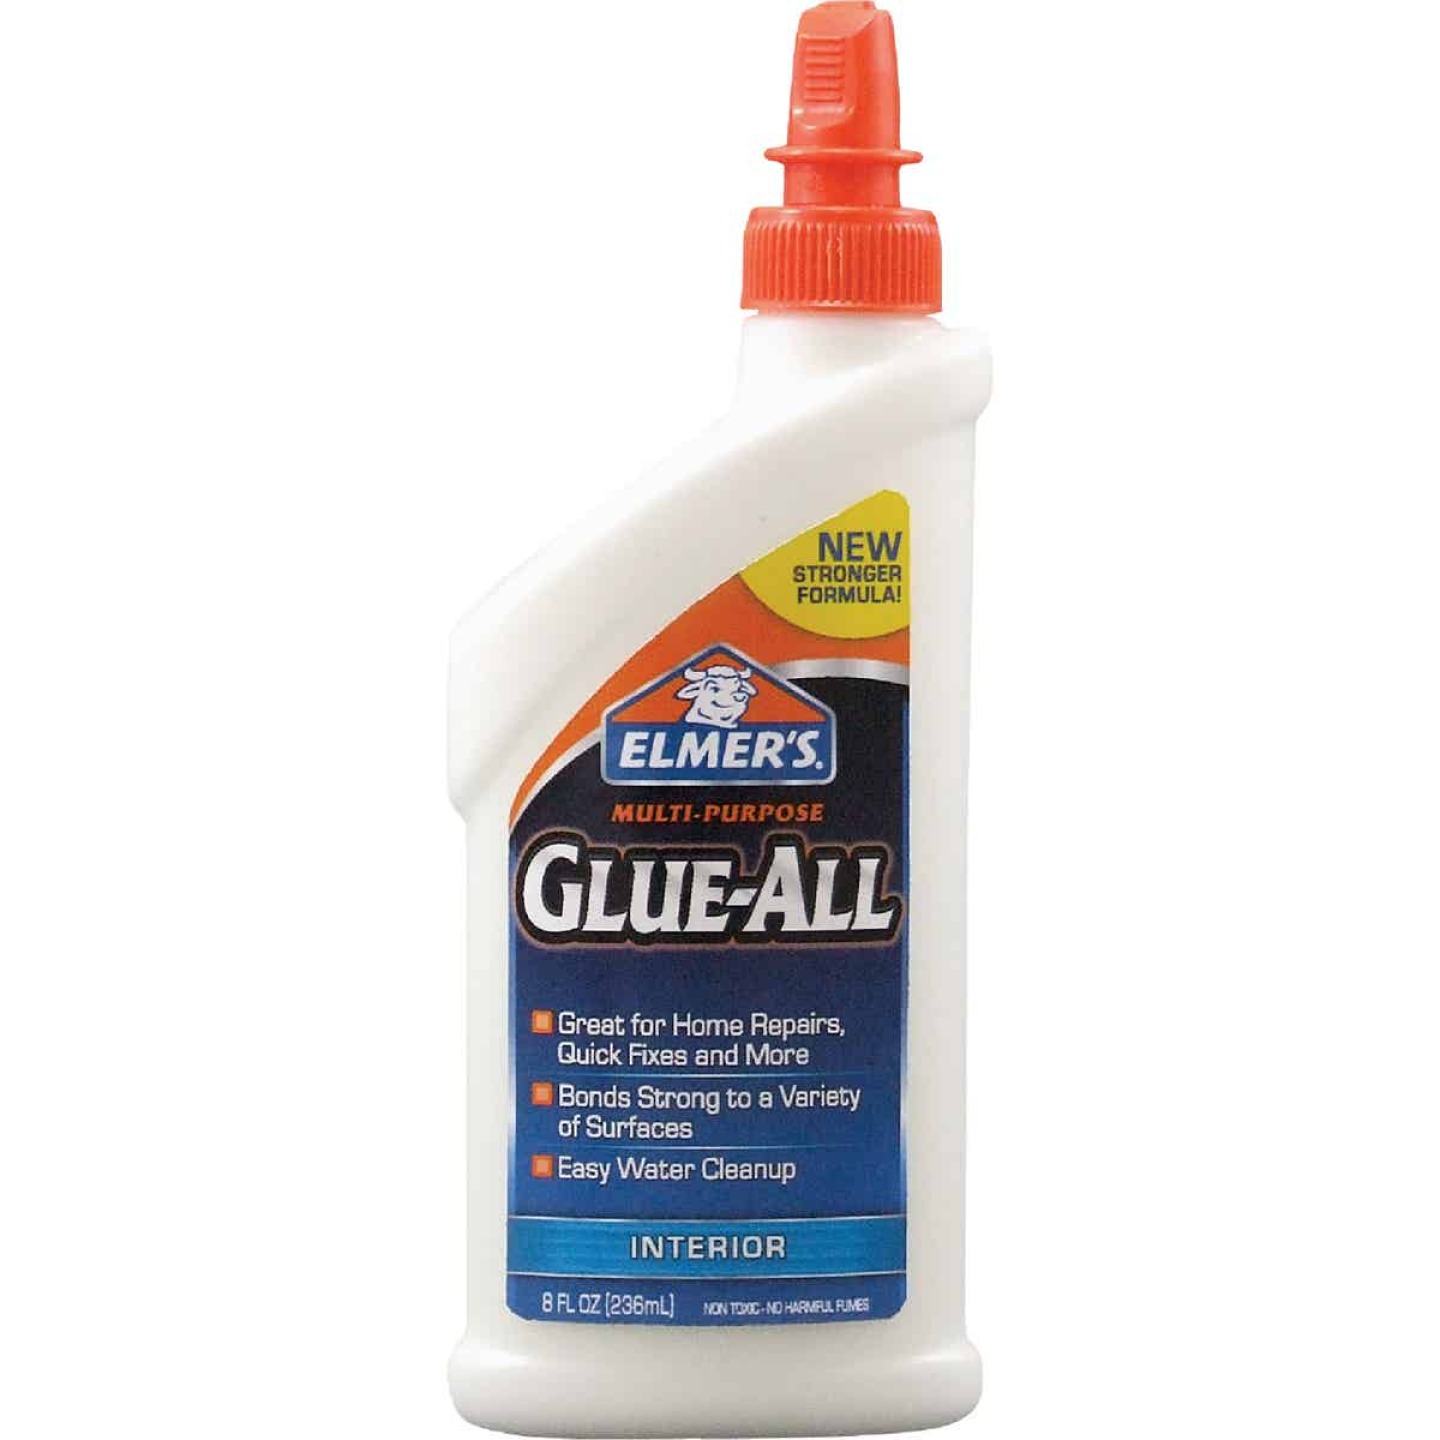 Elmer's Glue-All 8 Oz. All-Purpose Glue Image 1